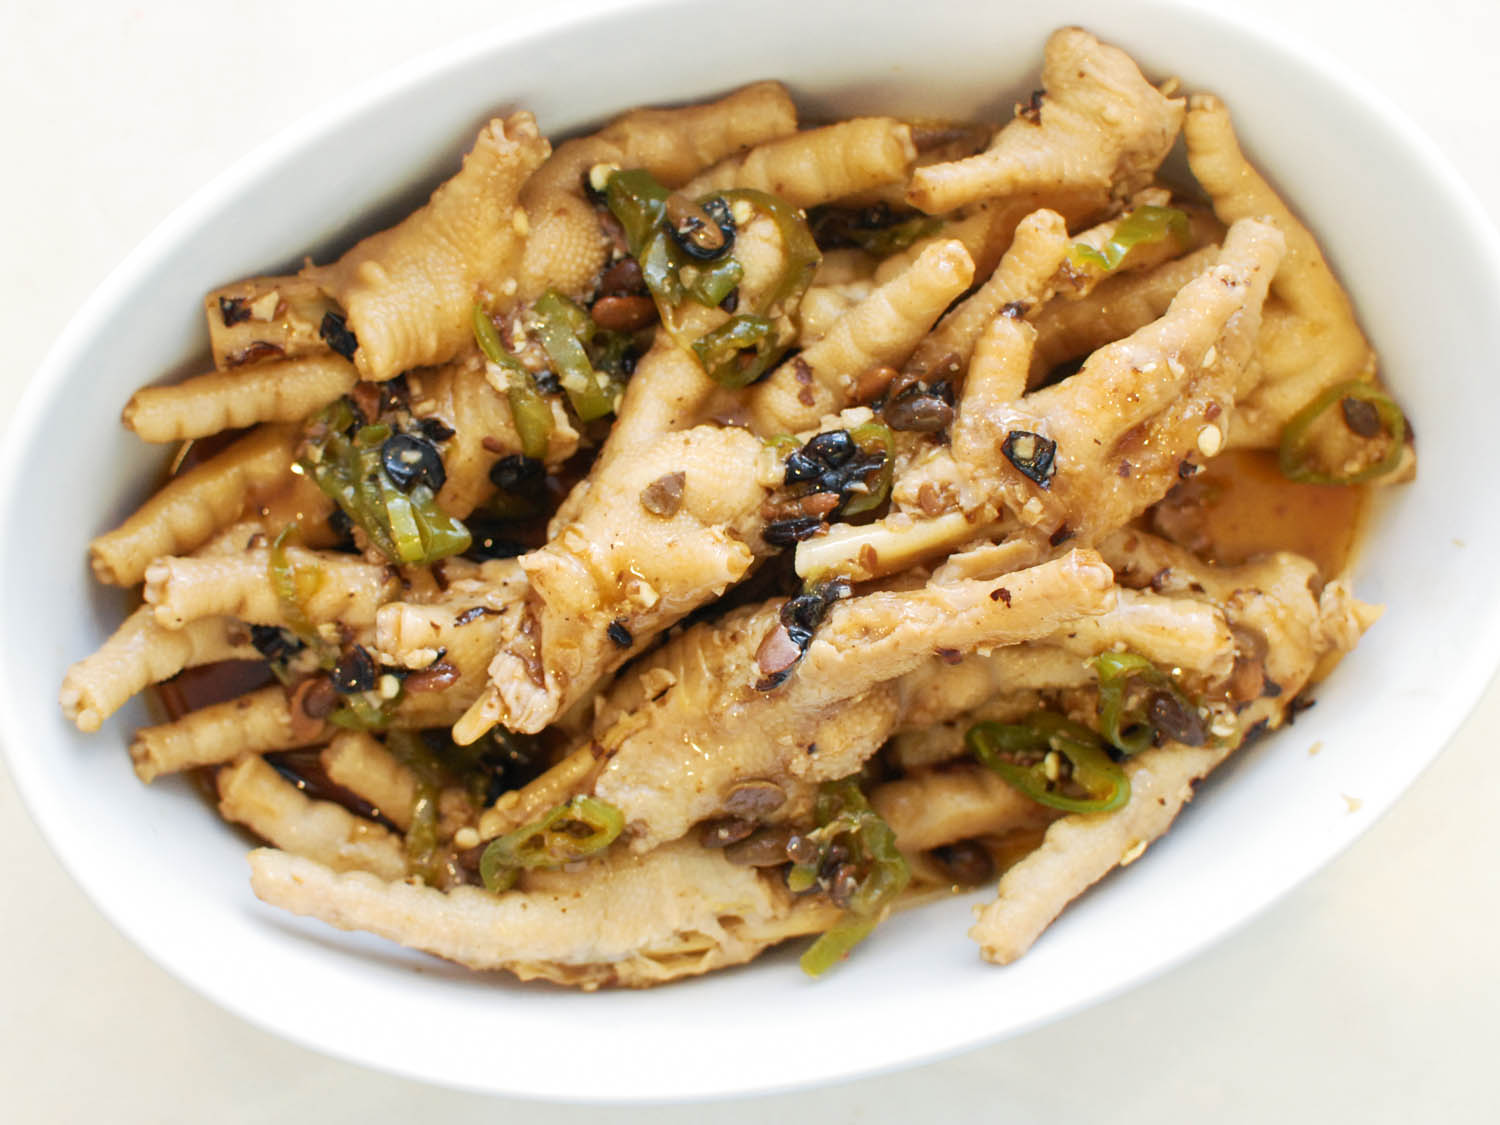 20140828-braised-chicken-feet-shao-zhong-15